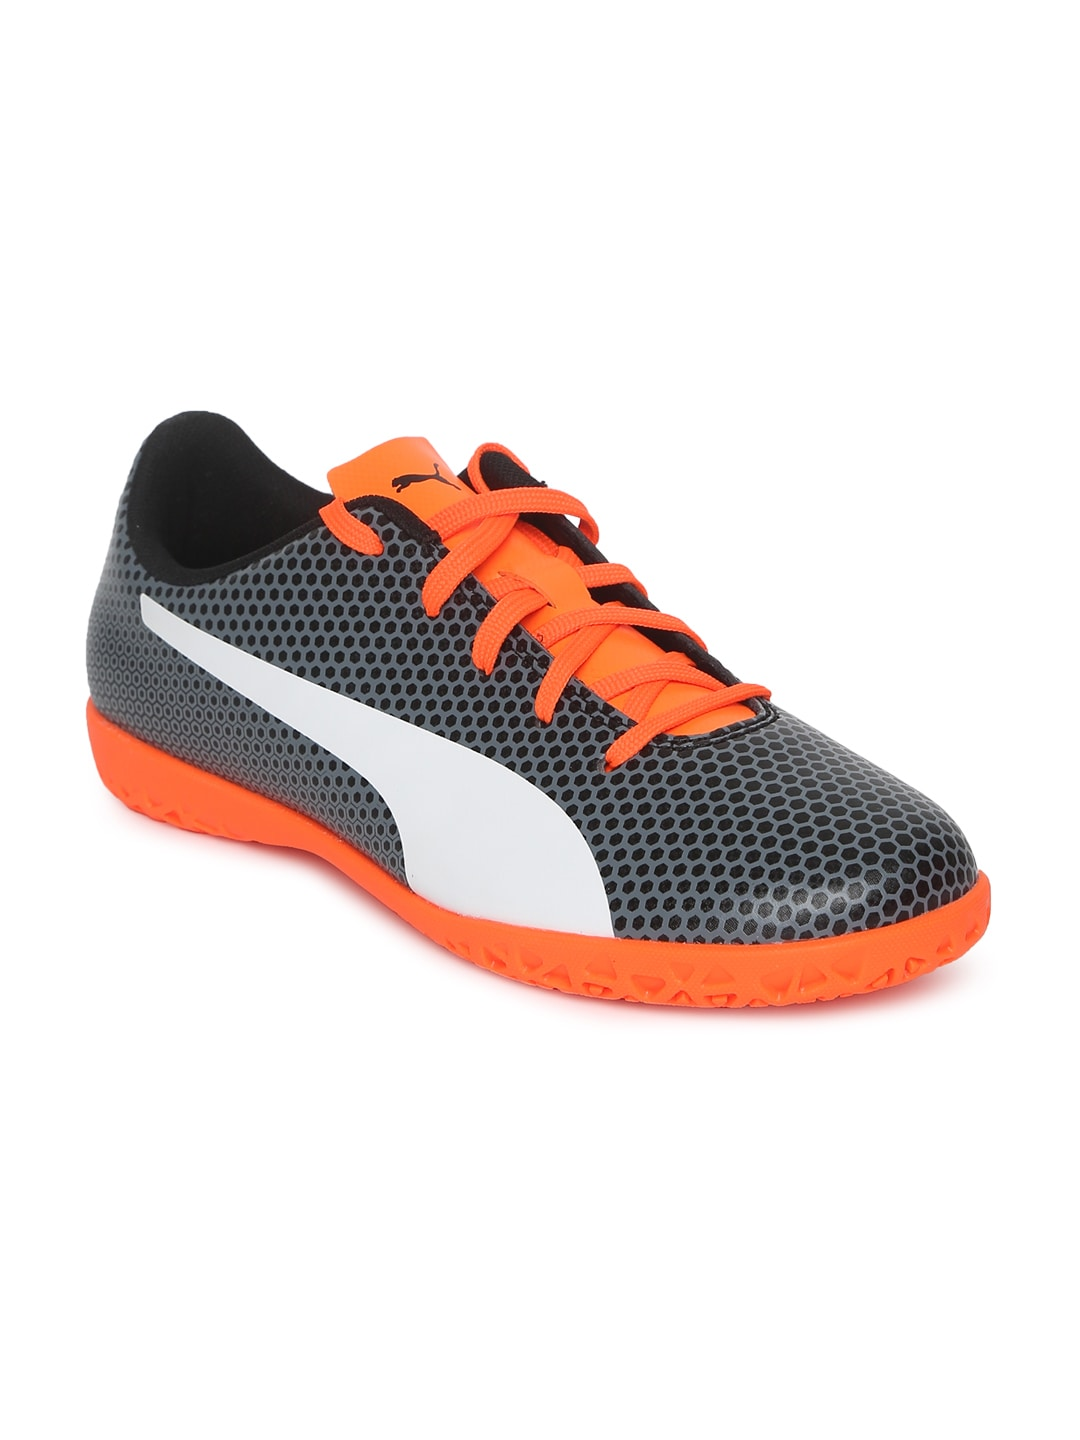 2b877ea1a9c8d6 Puma Sports Shoes